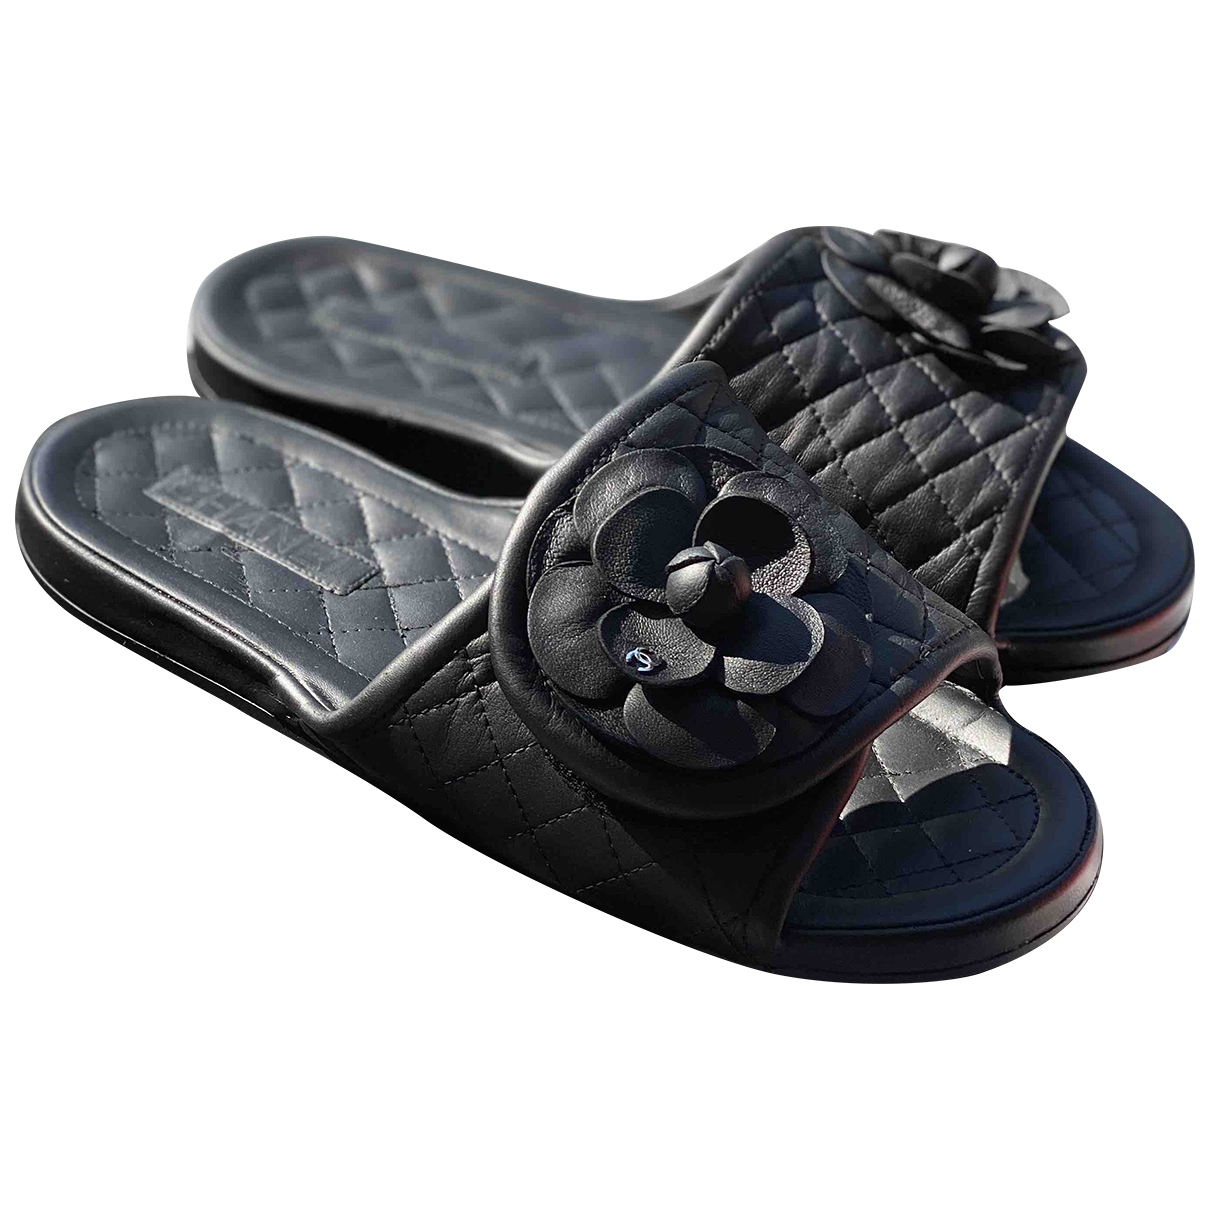 Chanel \N Black Leather Sandals for Women 40 EU